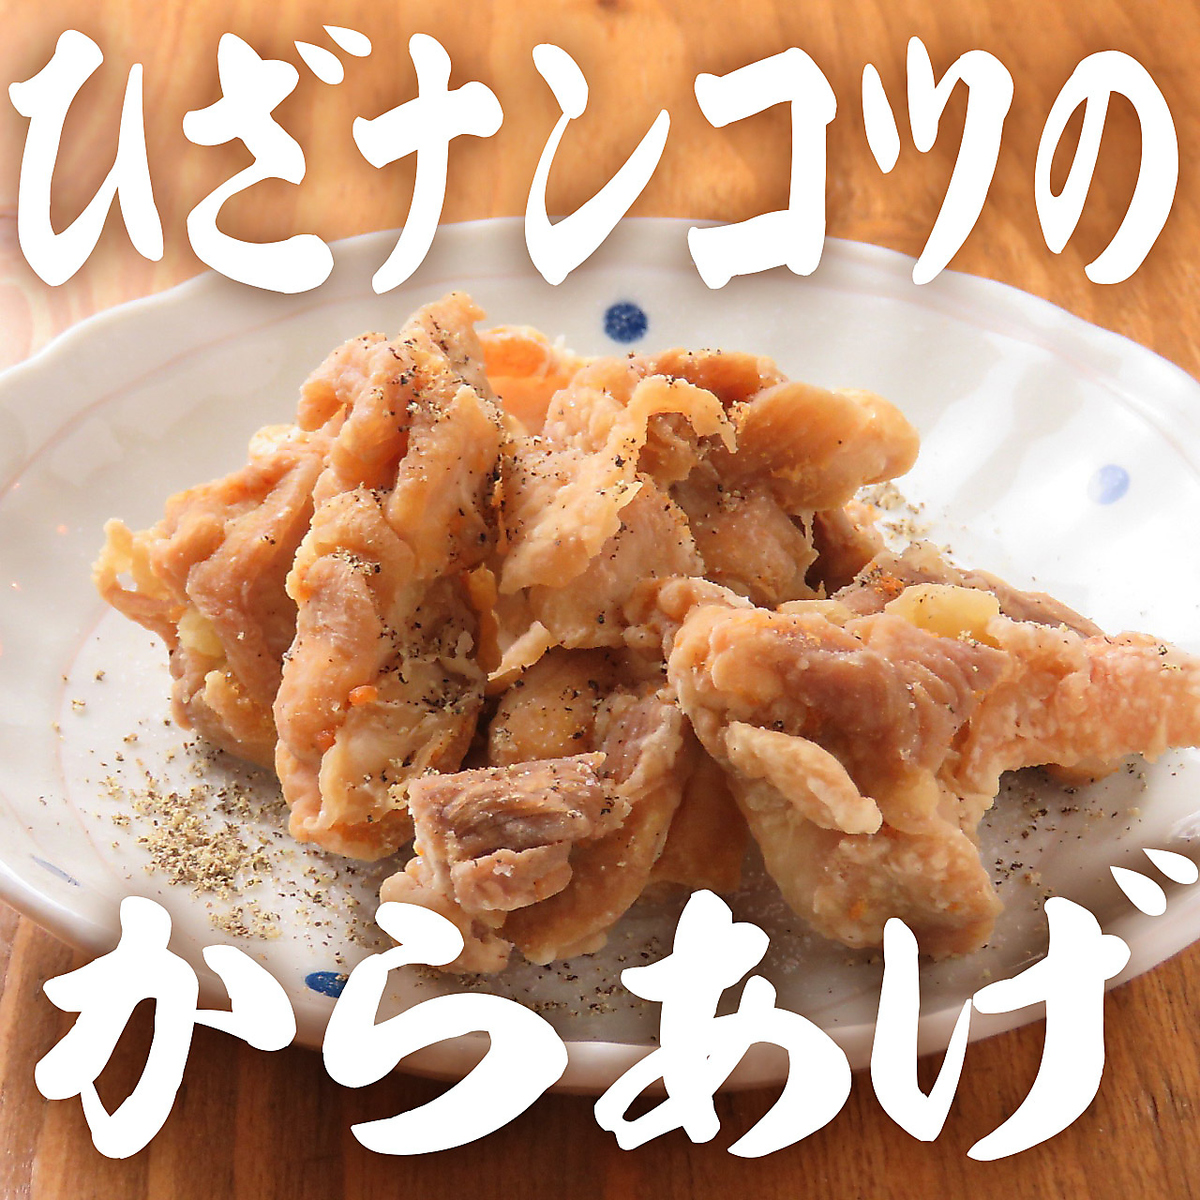 【Fried items】 Knife of knees and knees / Bean curd refuse